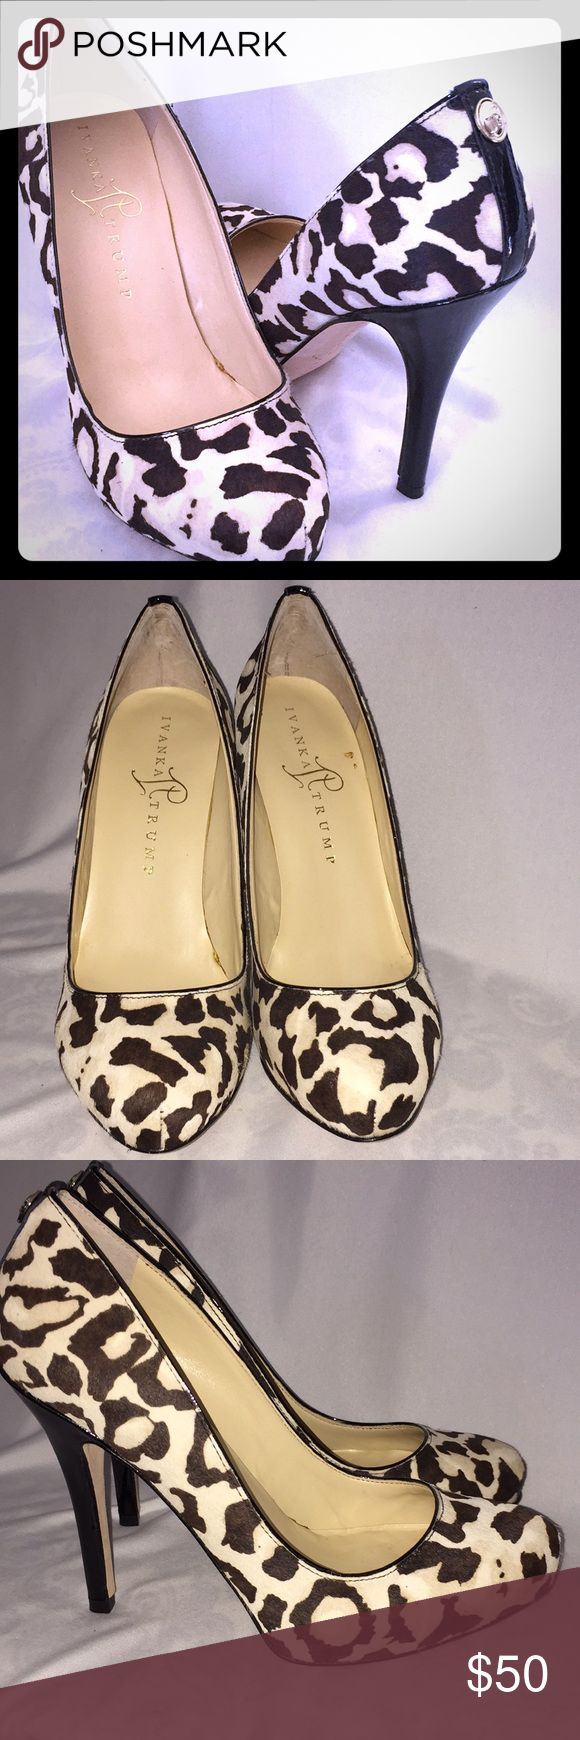 Ivanka Trump animal print high heels 5.5 Brand new heels excellent condition women size 5.5 Ivanka Trump Shoes Heels